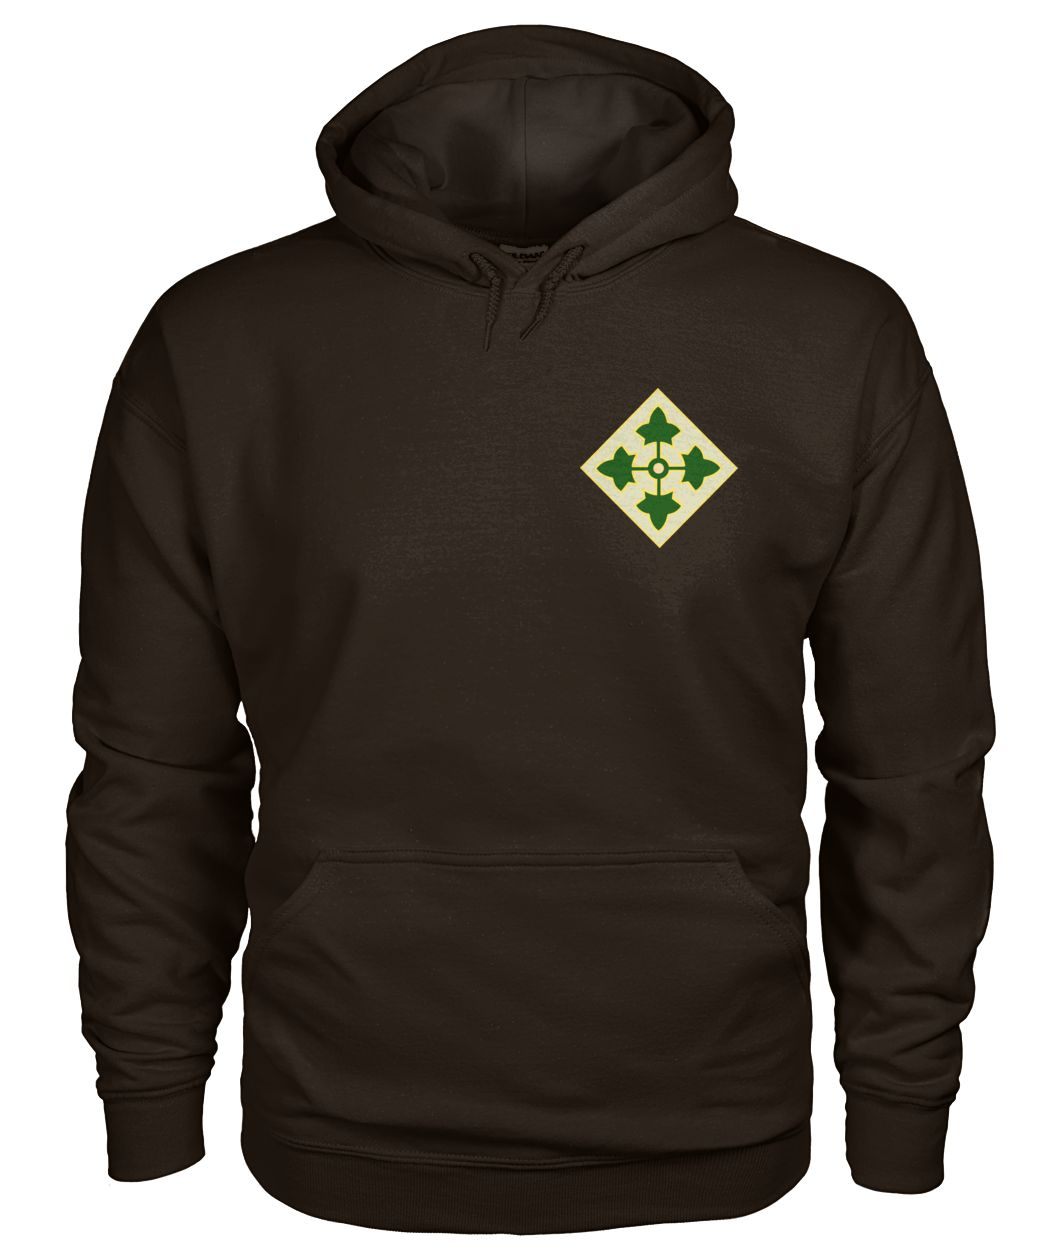 U.S. Army 4th Infantry Division hoodies